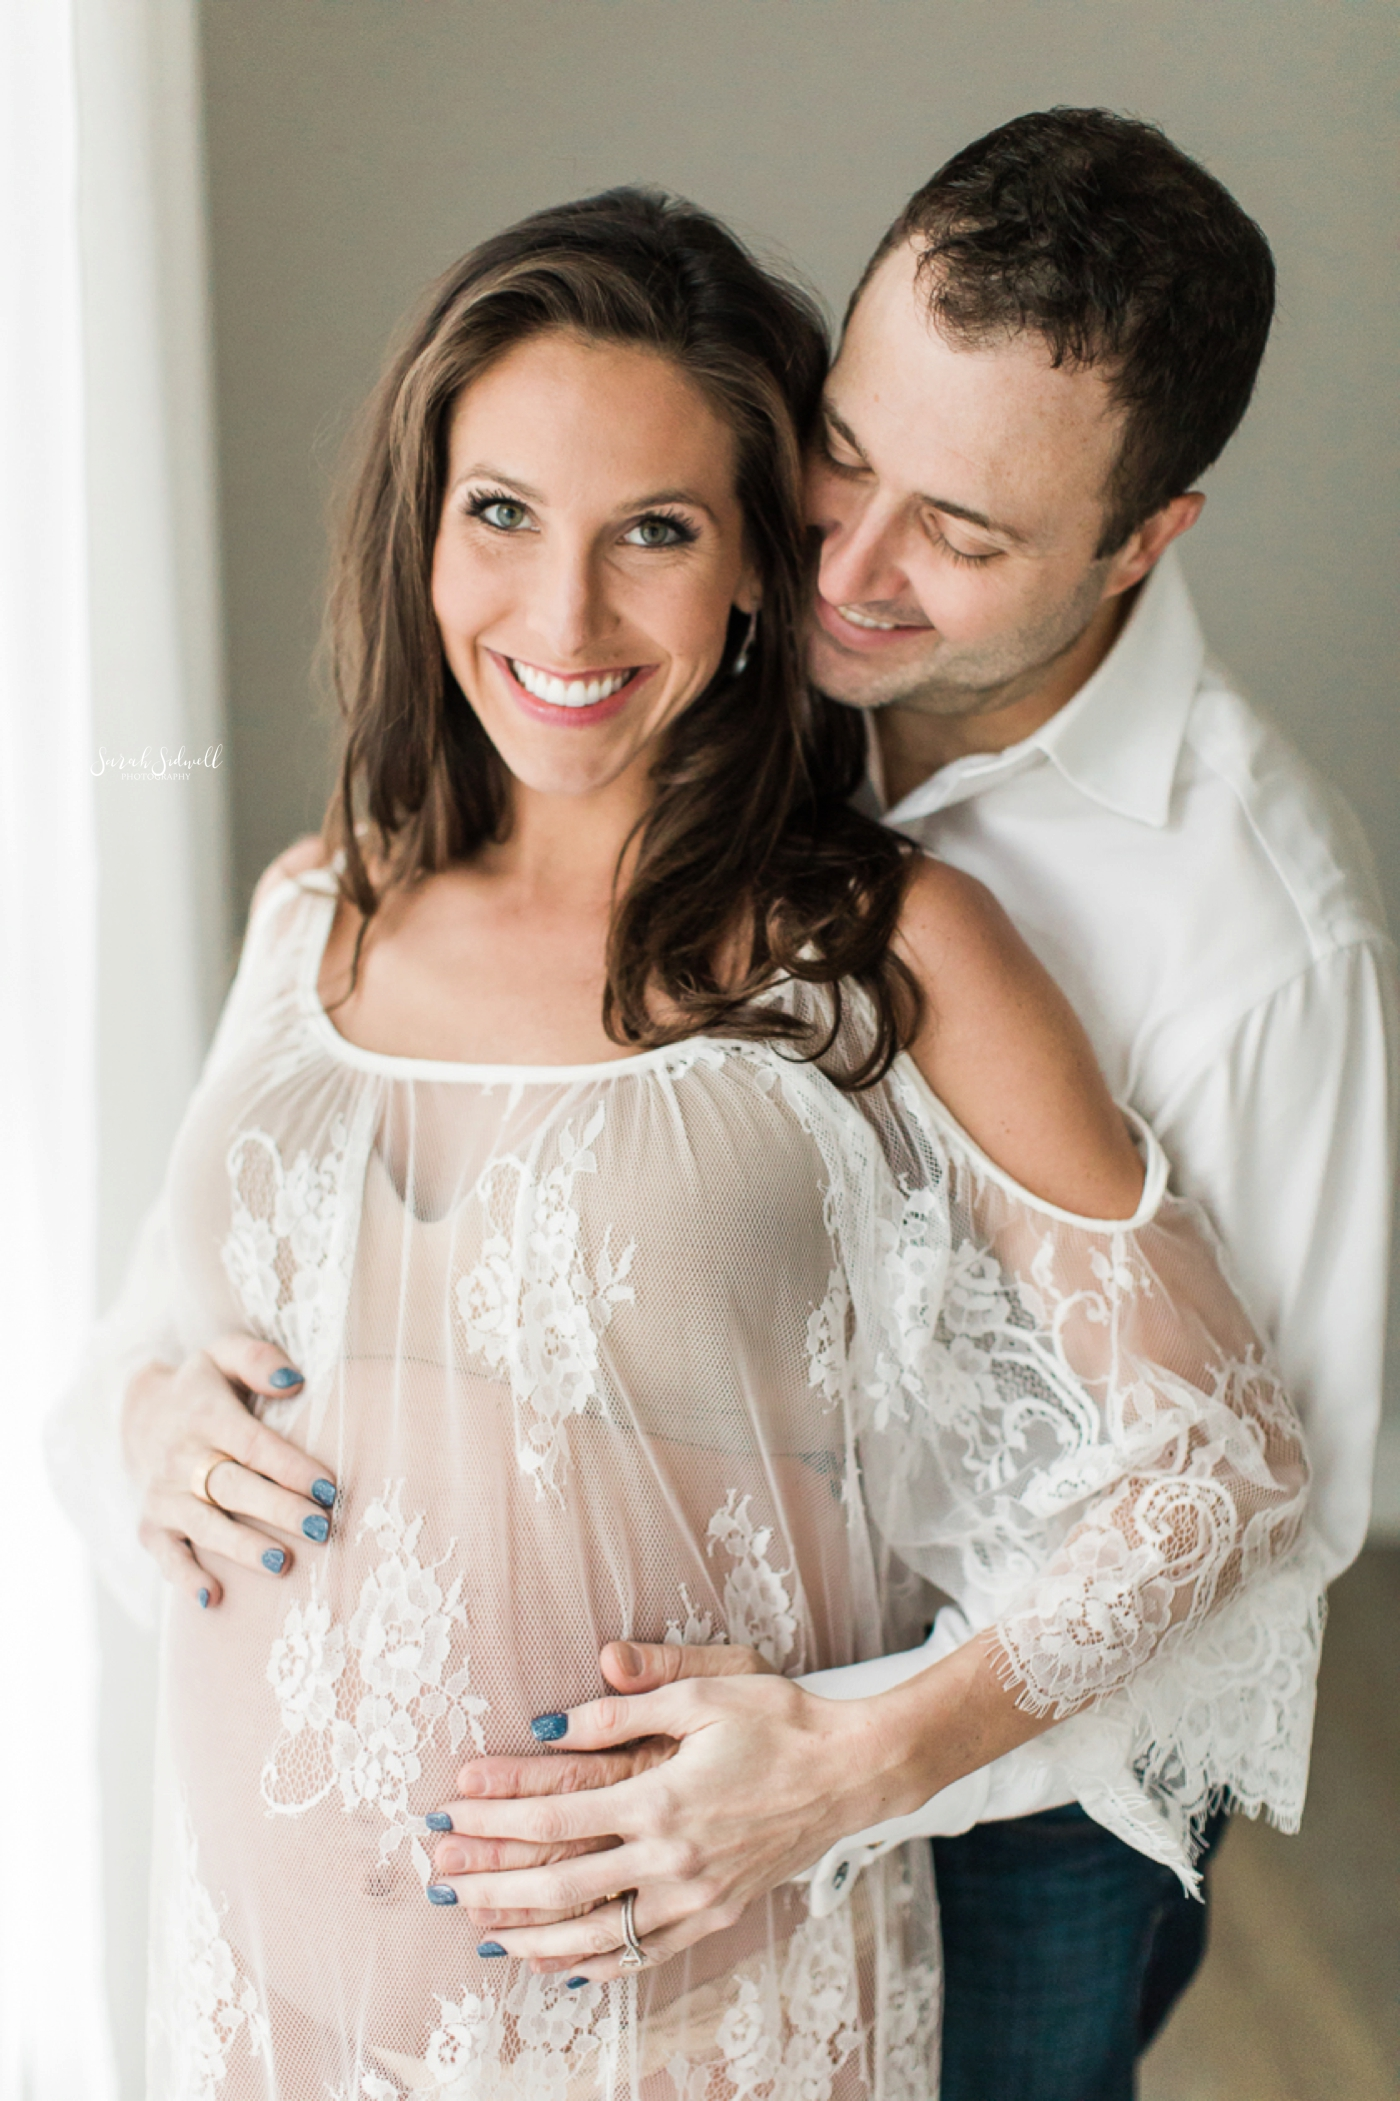 Classic Maternity Photography | Sarah Sidwell Photography